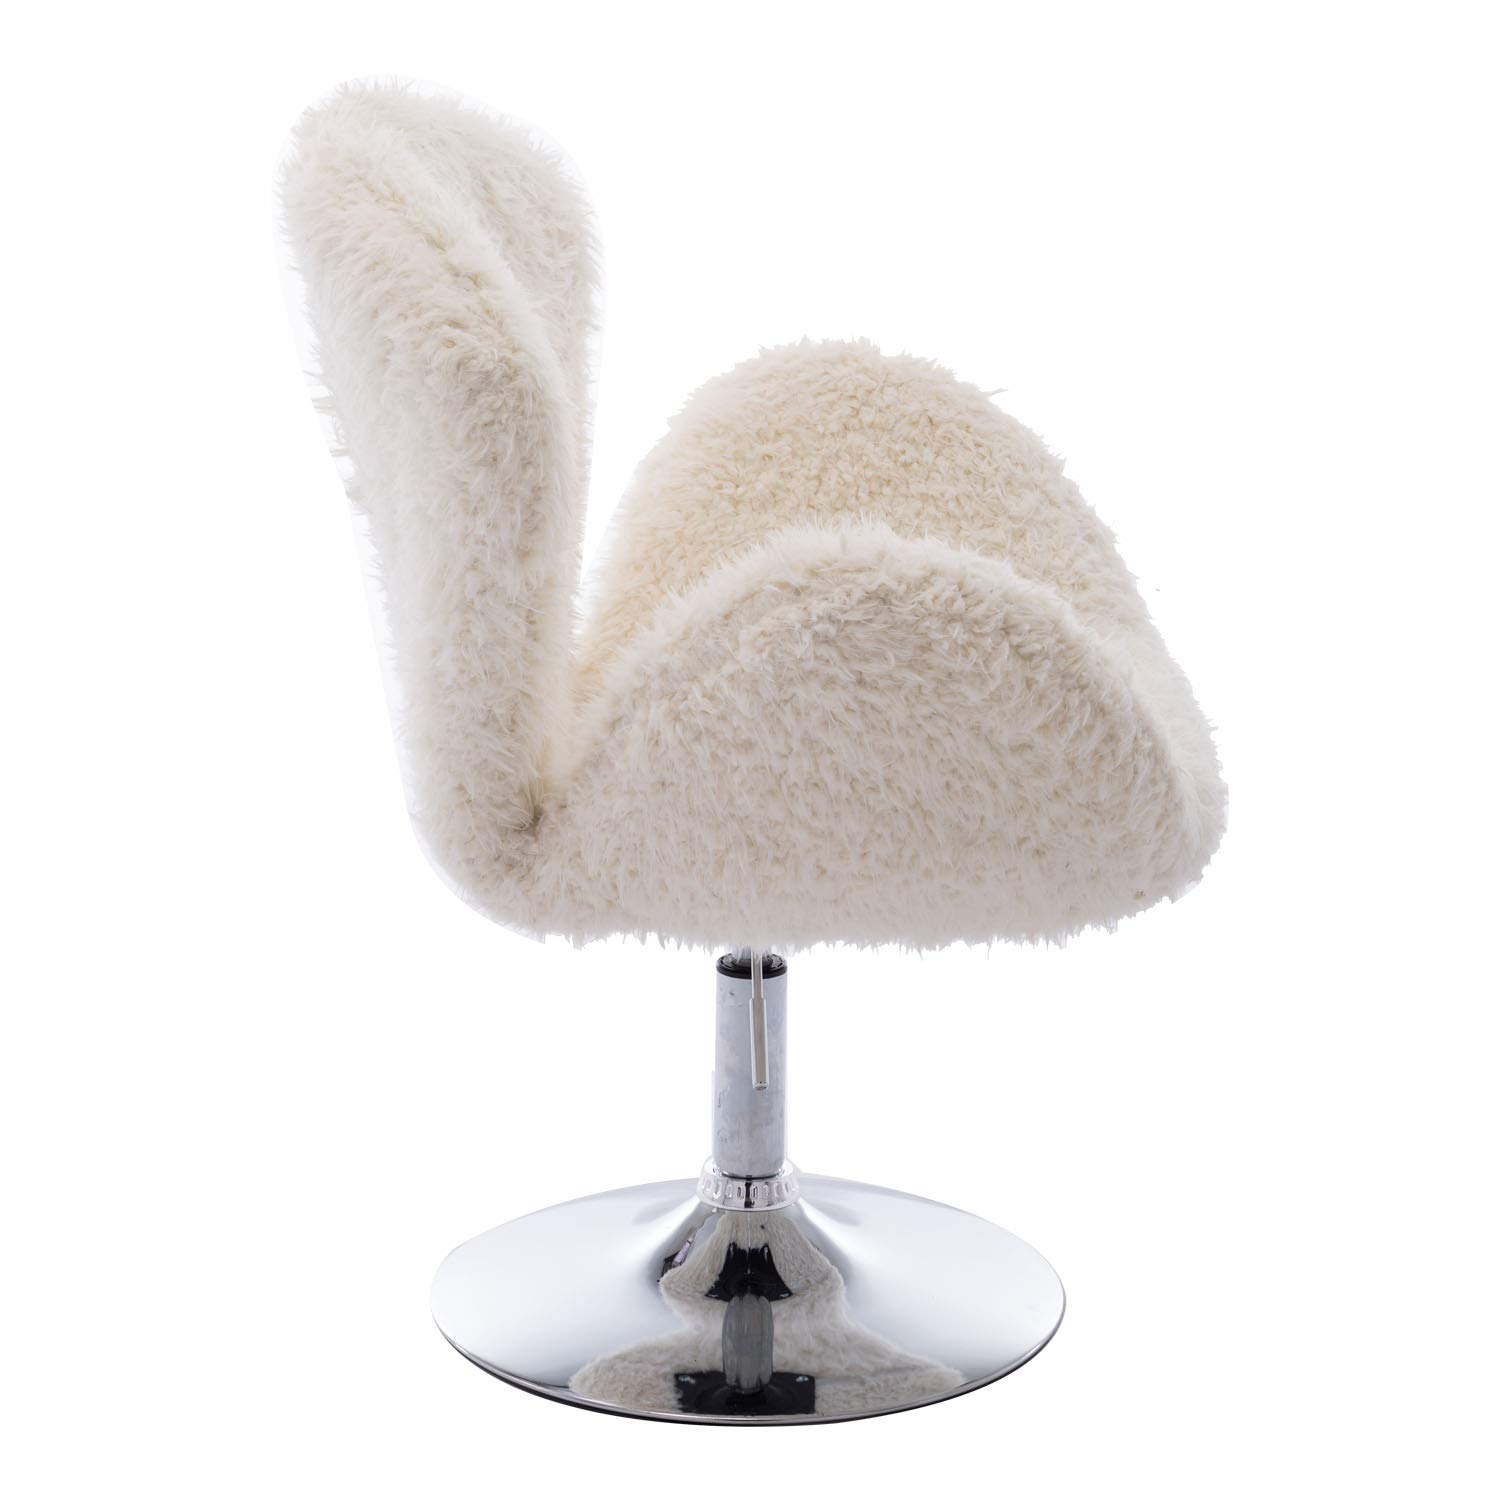 Brilliant Zhenghao Faux Fur Swivel Makeup Stool Modern White Swan Chair Curly Hair Fluffy Fuzzy Accent Chair With Armrest Alphanode Cool Chair Designs And Ideas Alphanodeonline